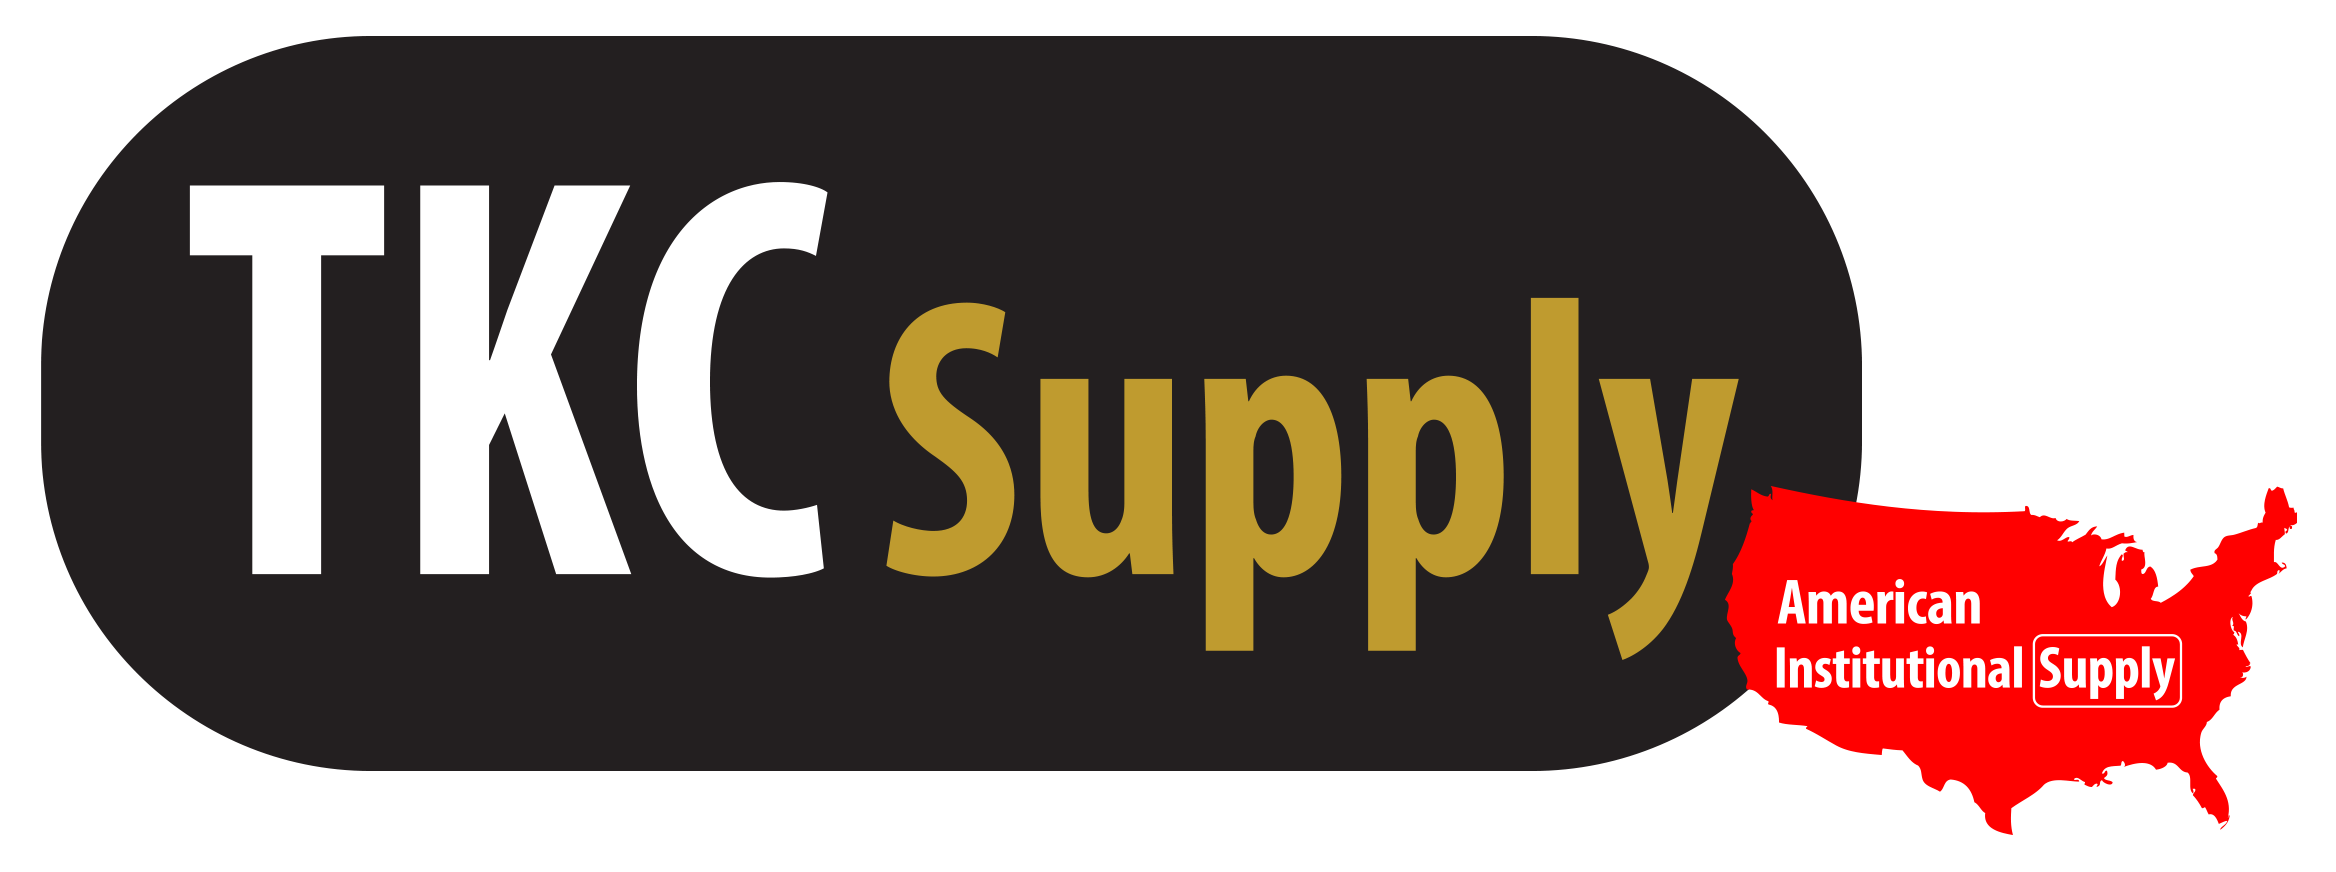 TKC Supply & American Institutional Supply